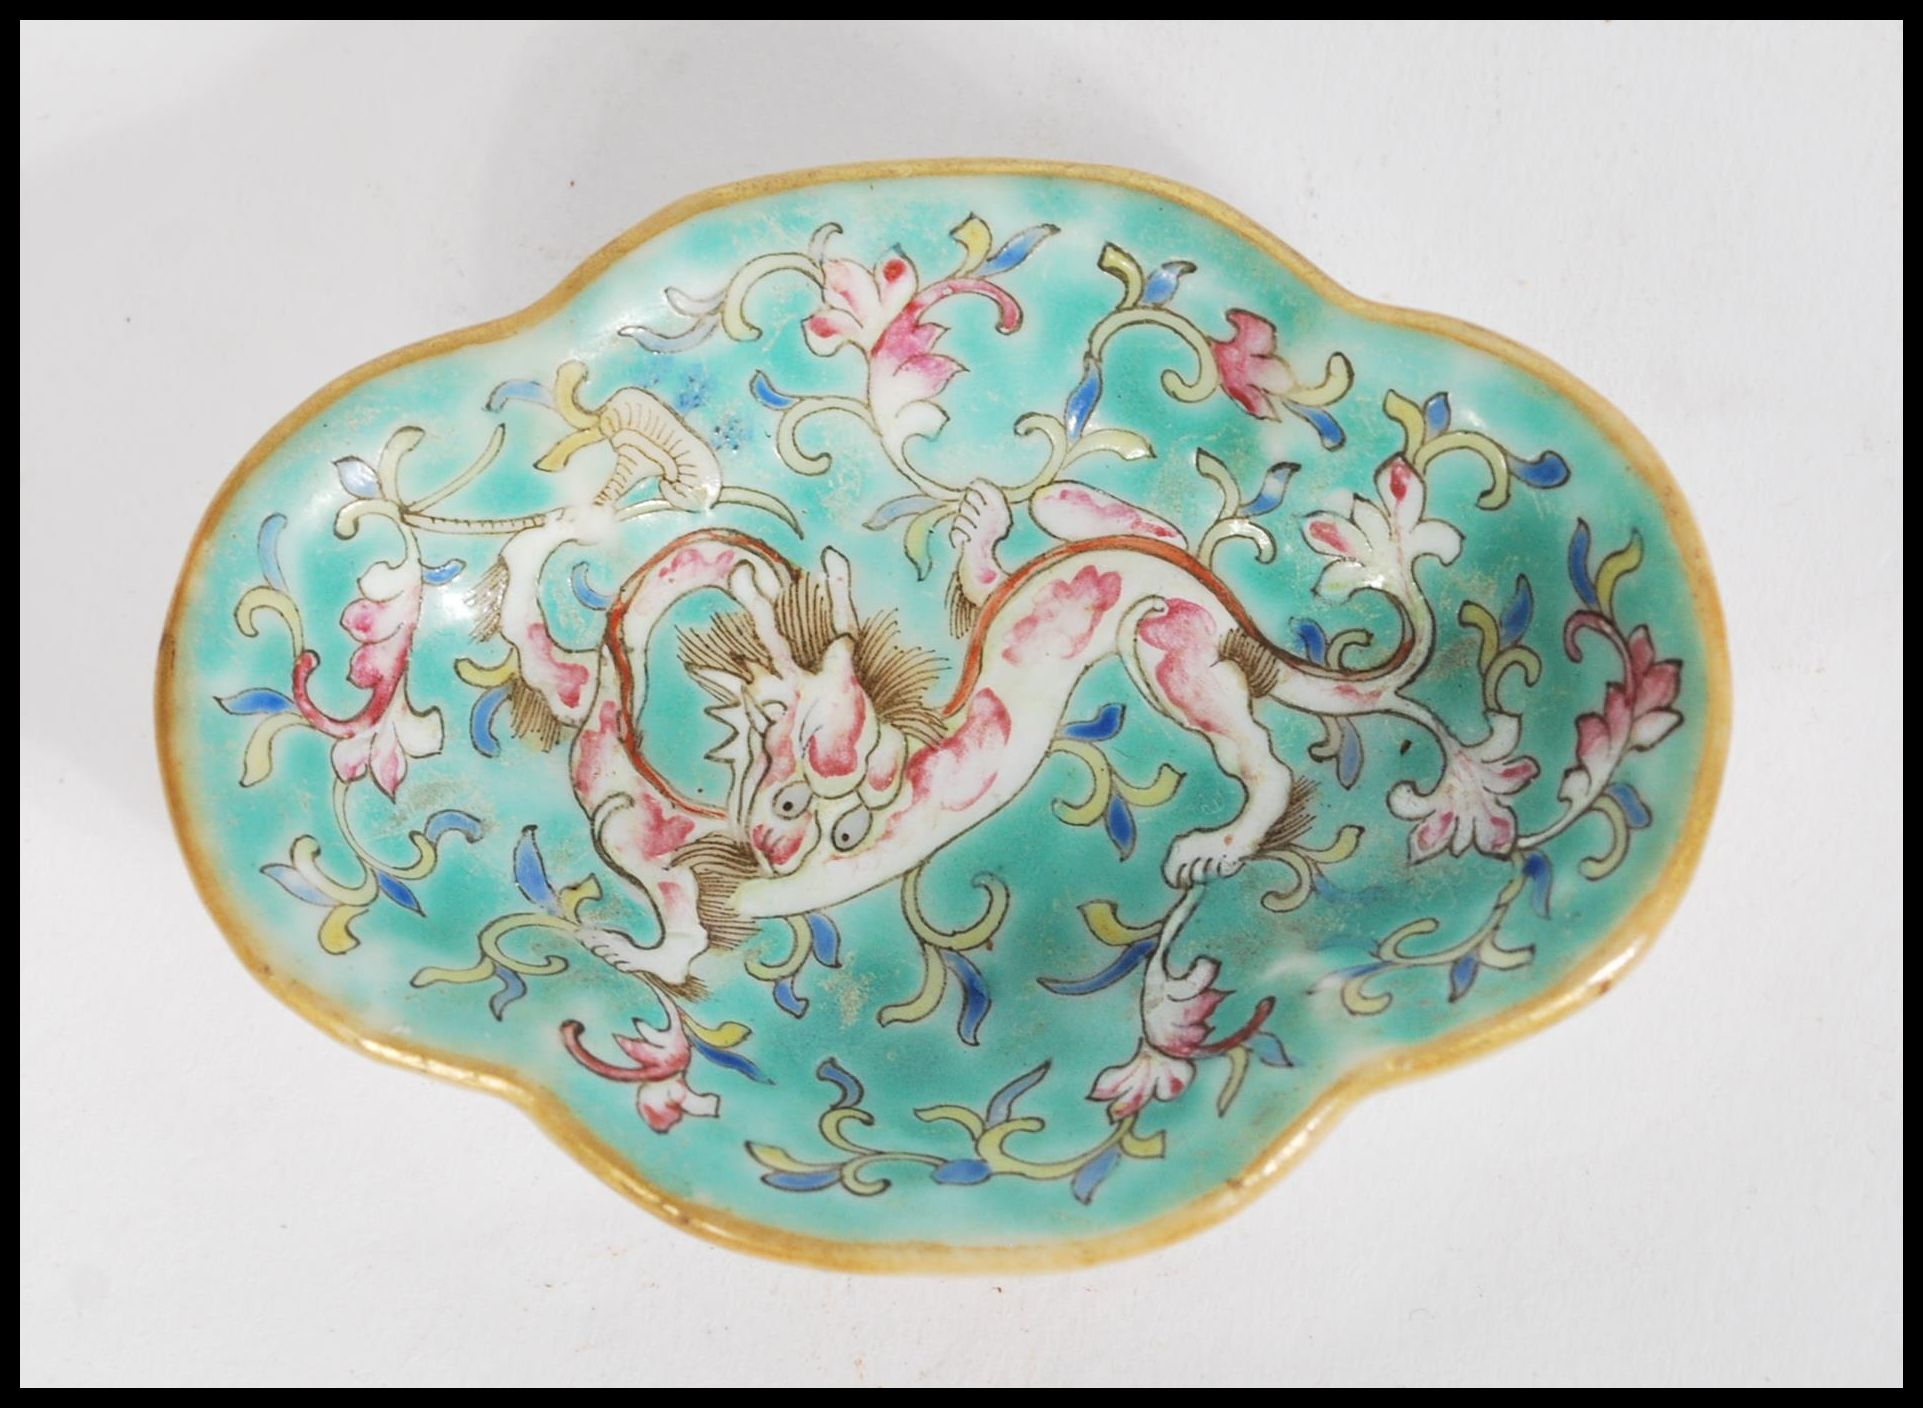 Lot 45 - A 19th century Chinese small brush water dish having hand painted and enamelled with dragon and